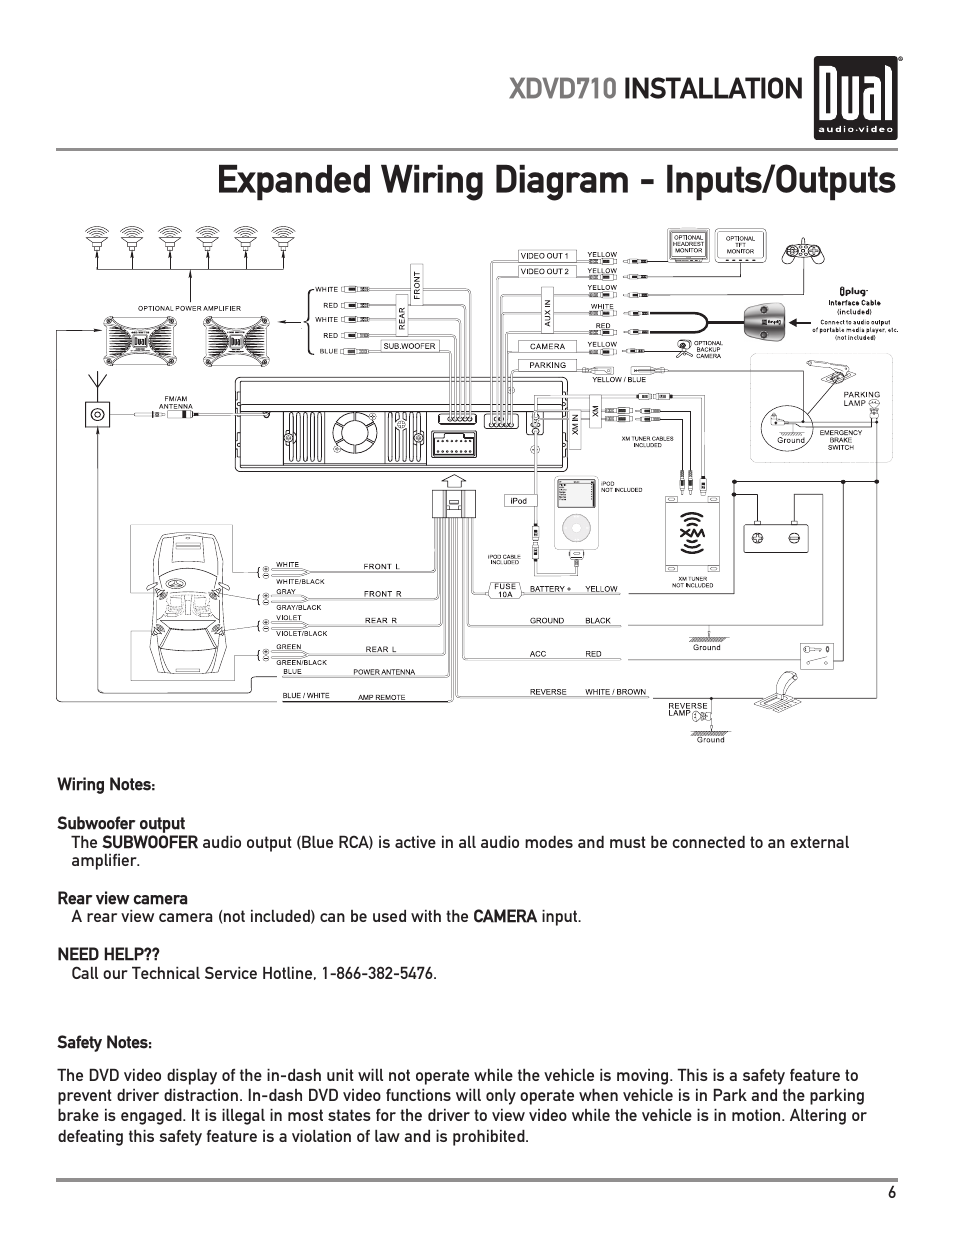 Expanded wiring diagram - inputs/outputs, Xdvd710 installation ... on sony explode car stereo wiring diagram, clarion wiring harness diagram, jvc radio wiring harness diagram, dual exhaust diagram, pioneer wiring color diagram, sub to kenwood radio diagram, s2000 stereo wire diagram, sony stereo wire harness diagram, pioneer car radio wiring diagram, kenwood wiring harness diagram, kenwood car radio wiring diagram, pioneer wiring harness diagram, sony wiring harness diagram, jvc car stereo wiring diagram,